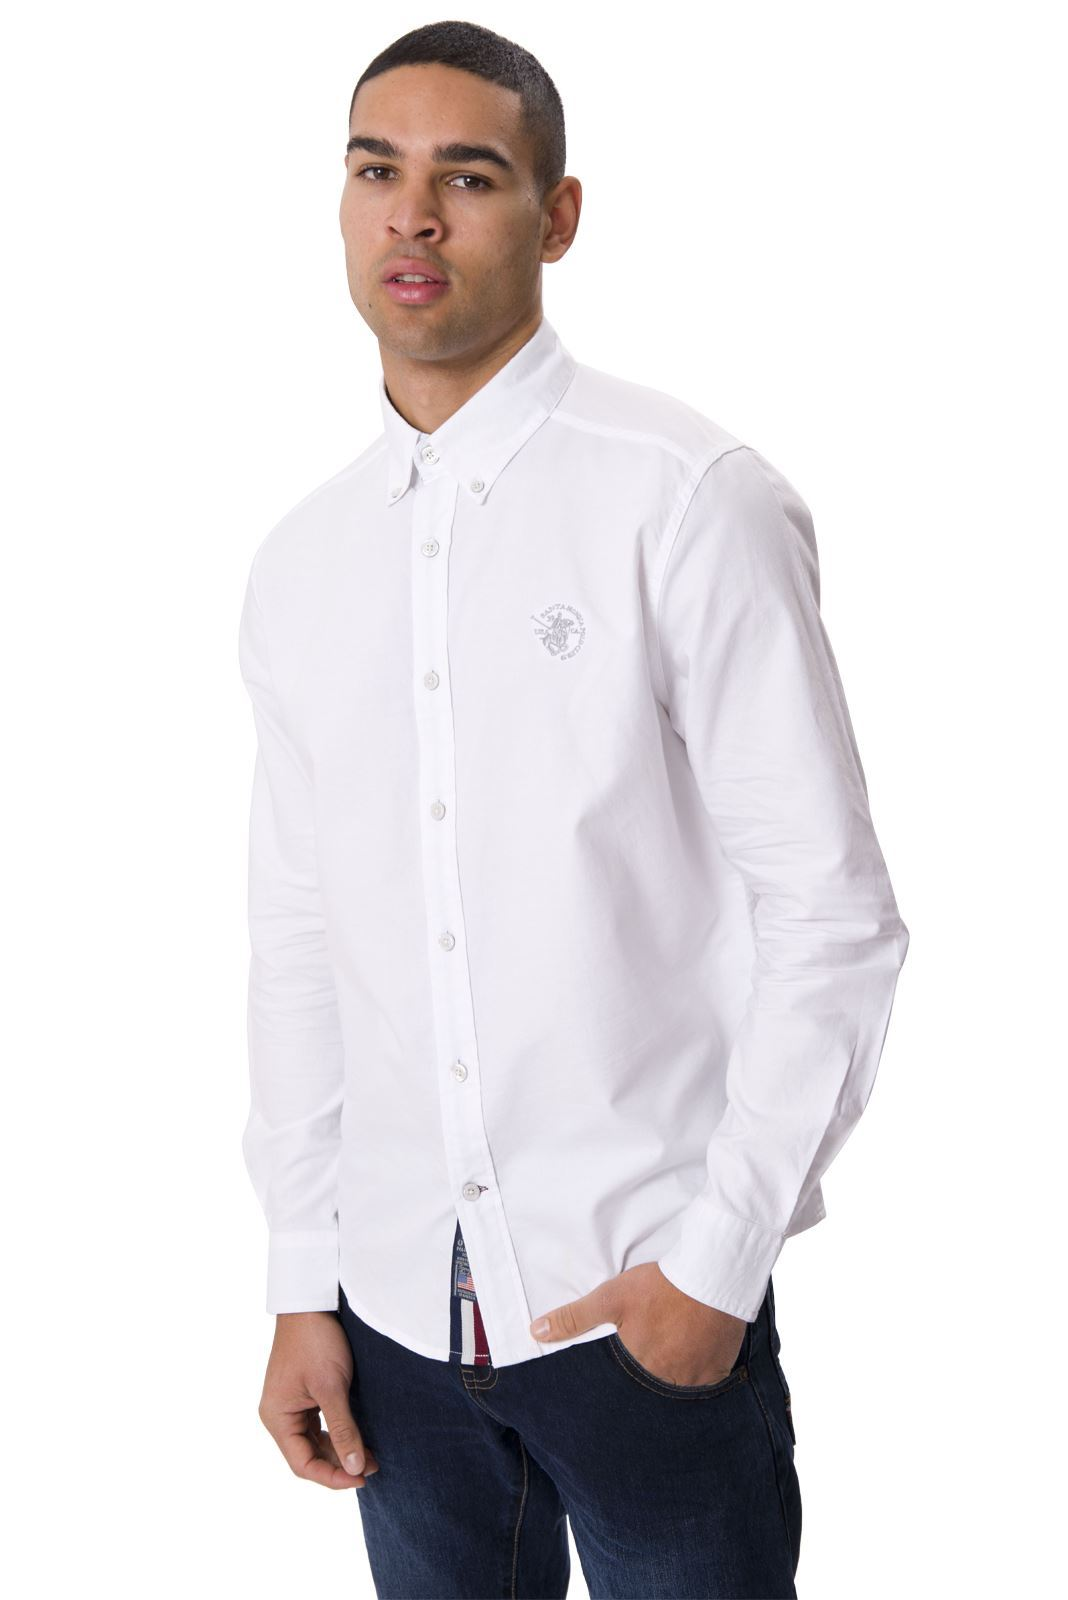 Santa monica polo club mens long sleeve plus size collared for Mens button collar shirts